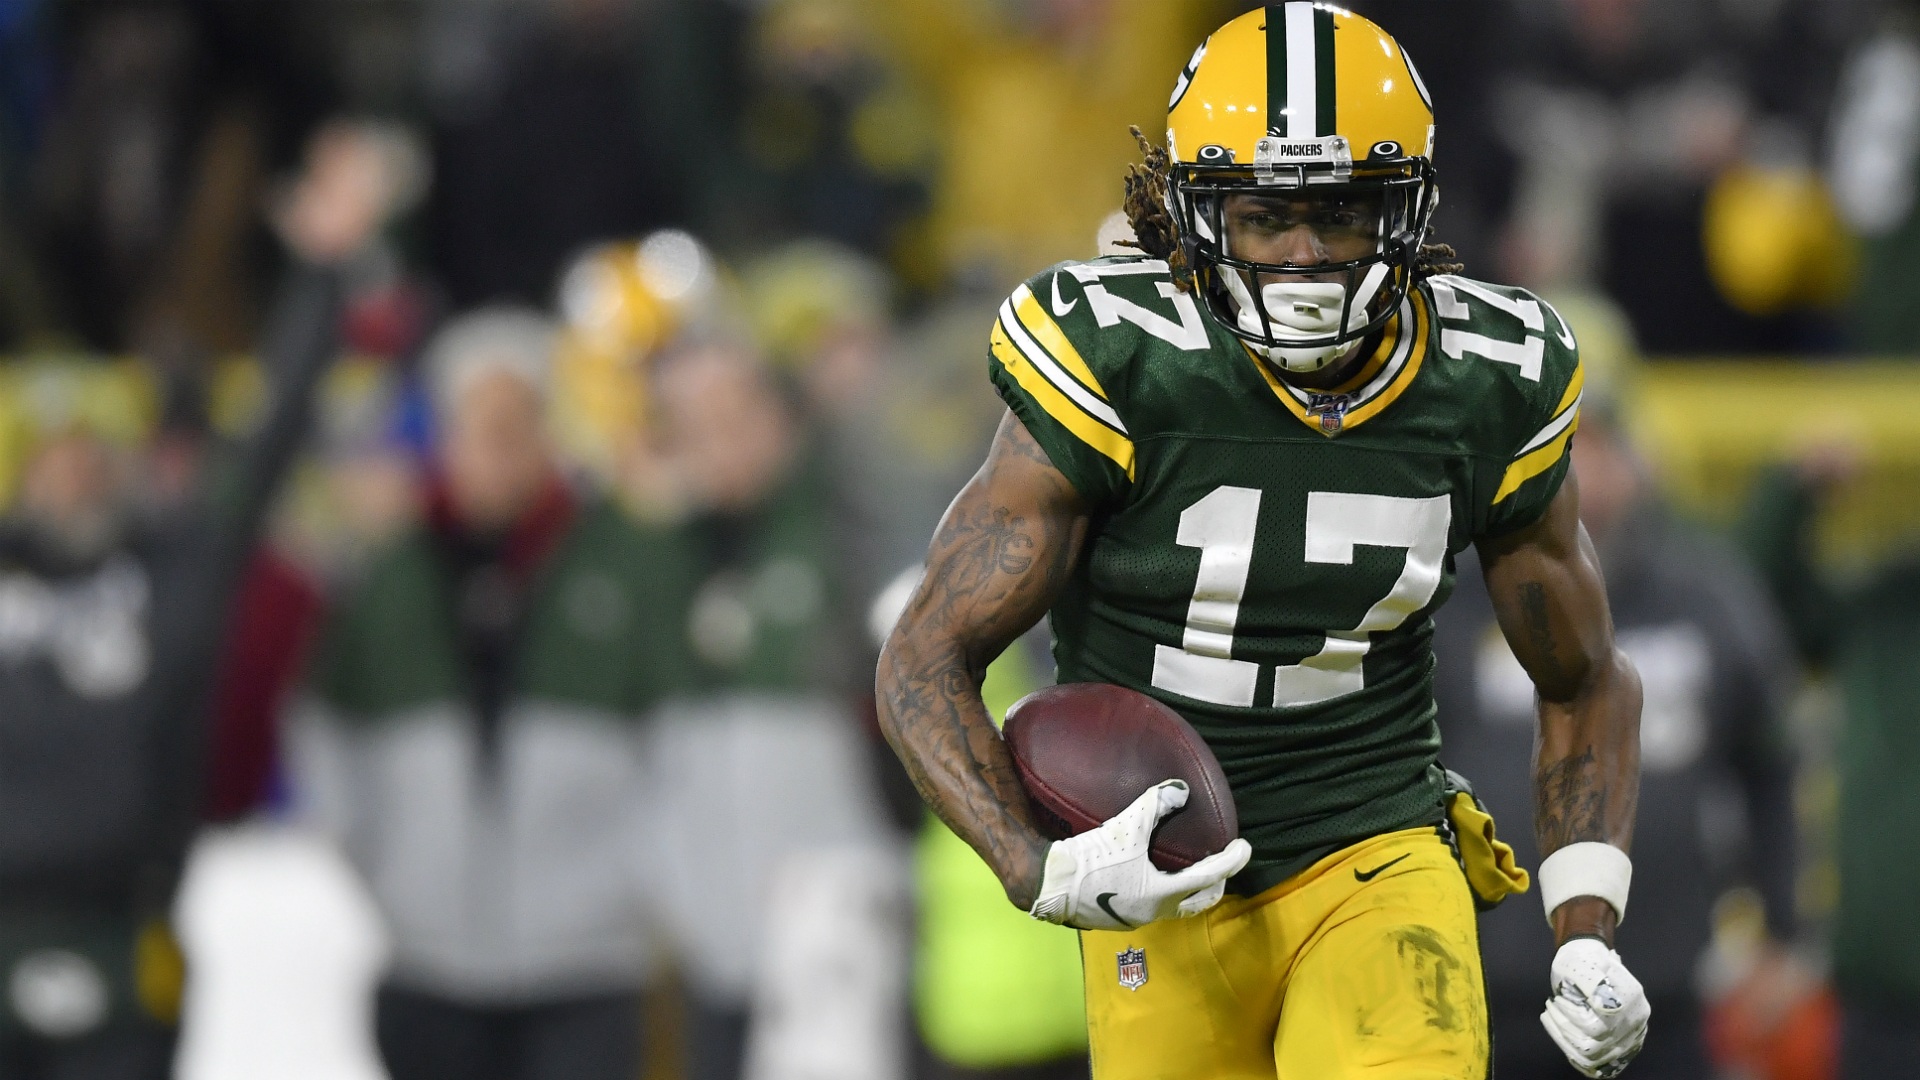 Davante Adams shows in Packers' win over Seahawks that he has evolved into Green Bay's latest superstar receiver